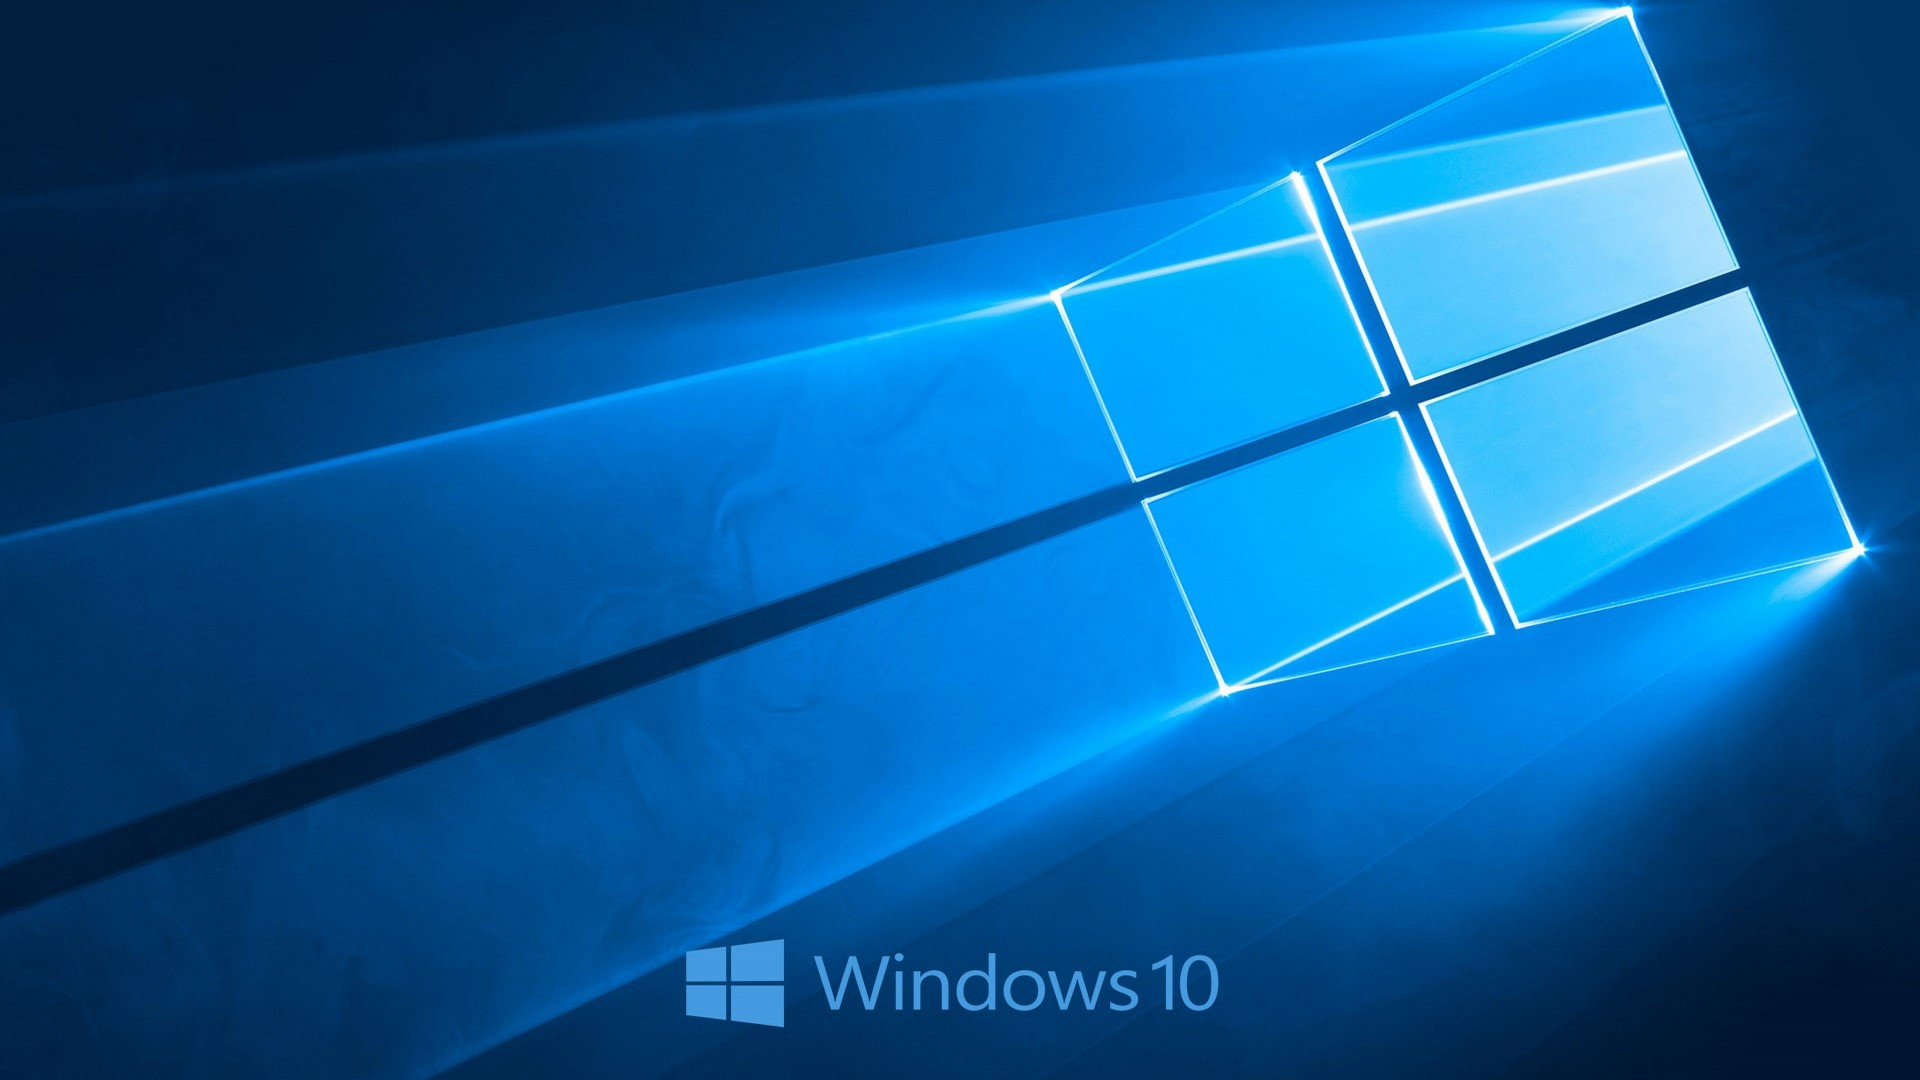 400 stunning windows 10 wallpapers hd image collection 2017 for New to windows